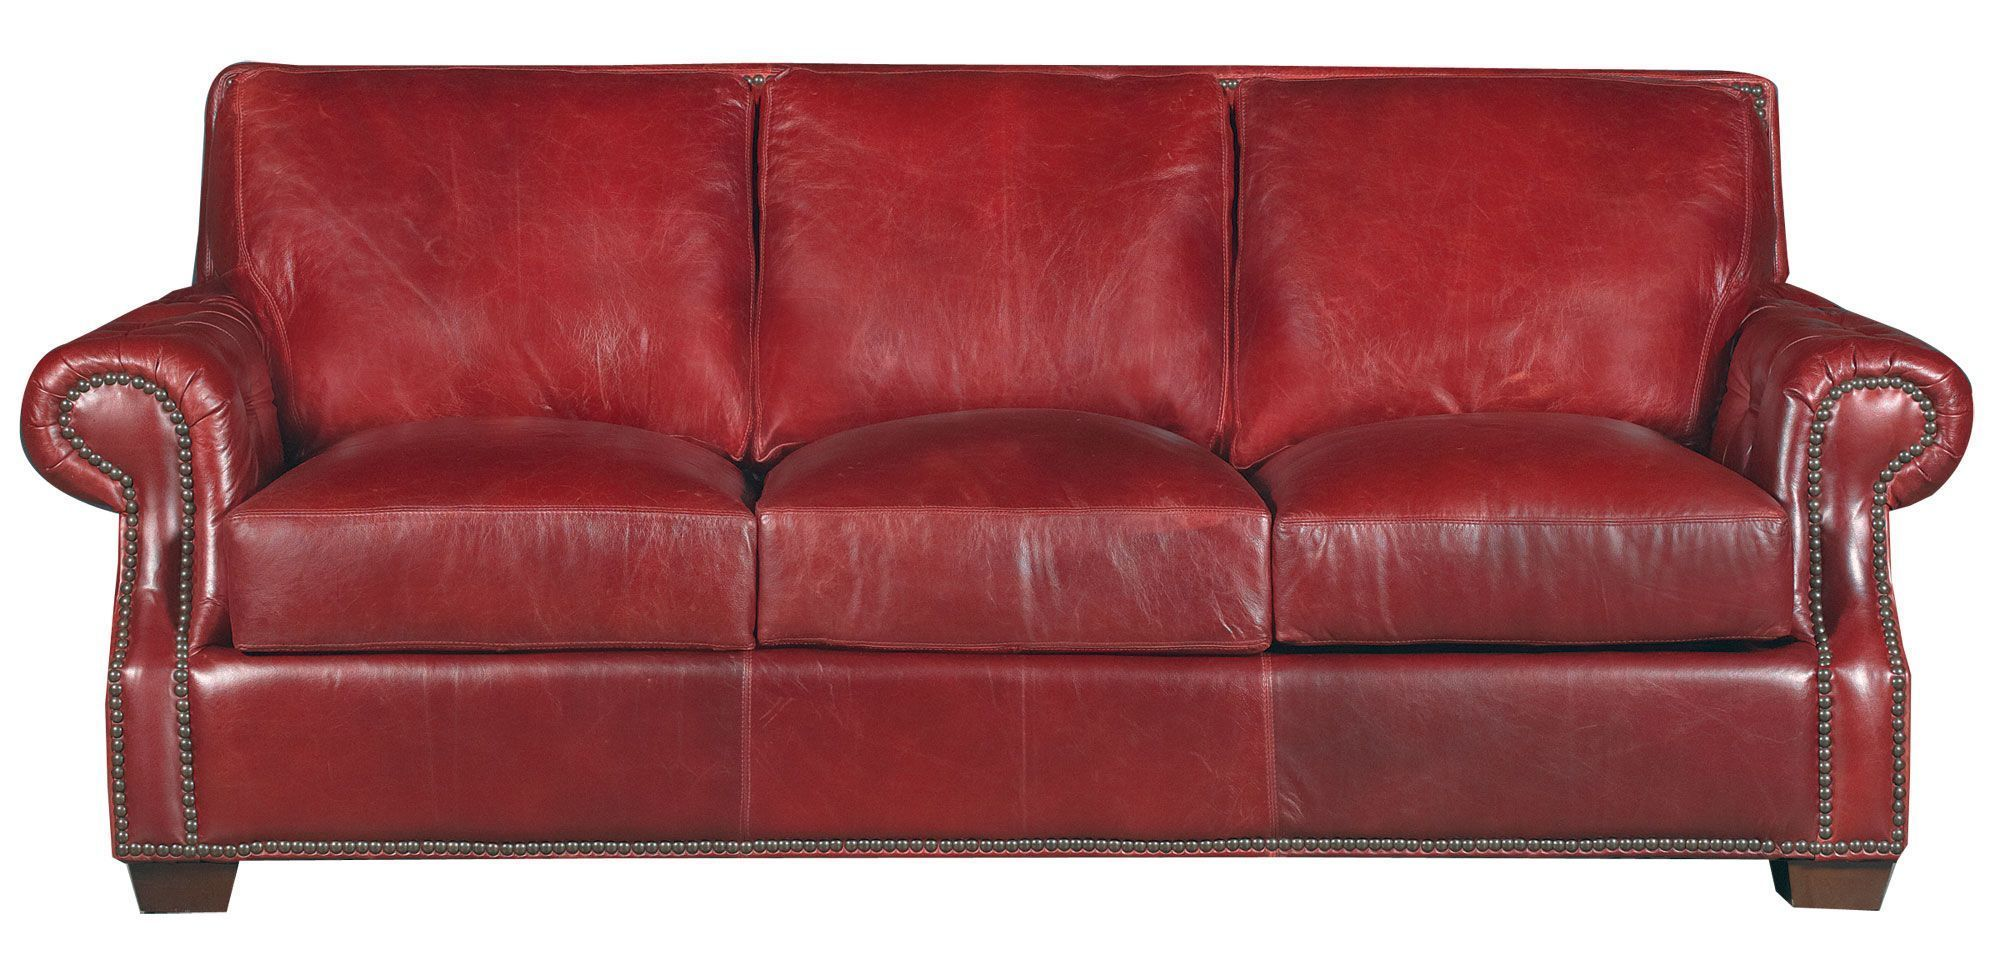 Classic Traditional Red Leather Sofa Old English Apprendre L